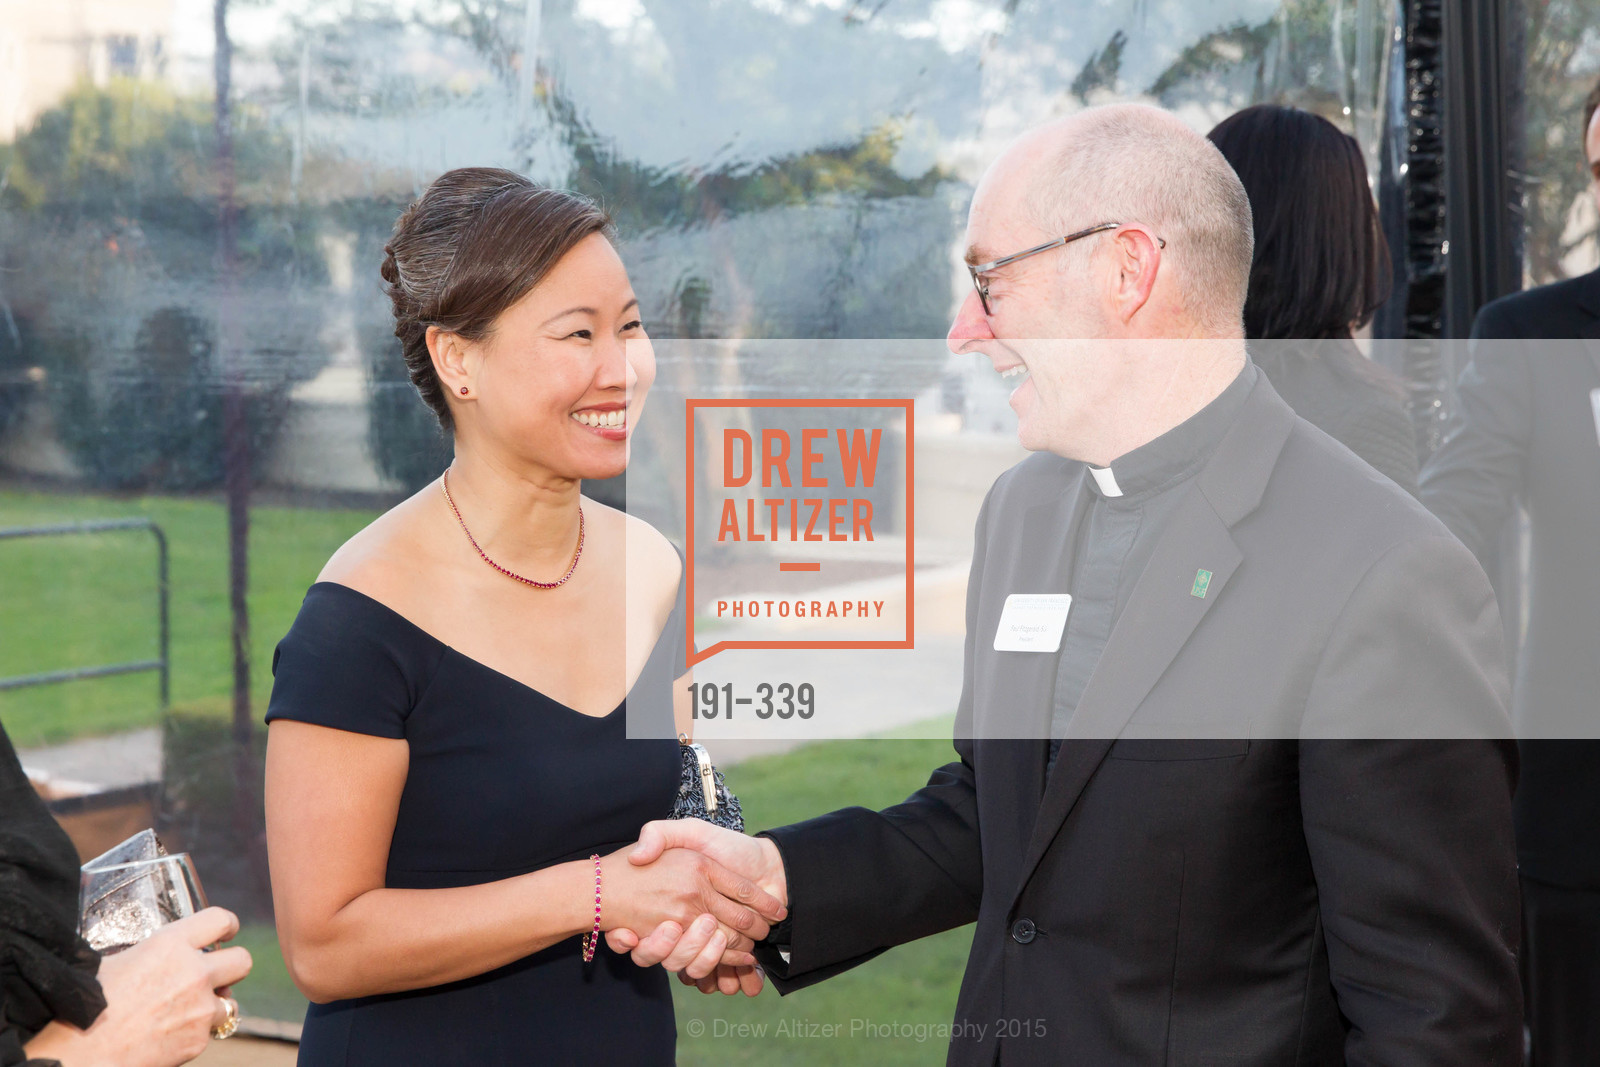 Doris Cheng, Fr Paul Fitzgerald, University of San Francisco Alumni Awards Gala 2015, University of San Francisco, October 2nd, 2015,Drew Altizer, Drew Altizer Photography, full-service agency, private events, San Francisco photographer, photographer california